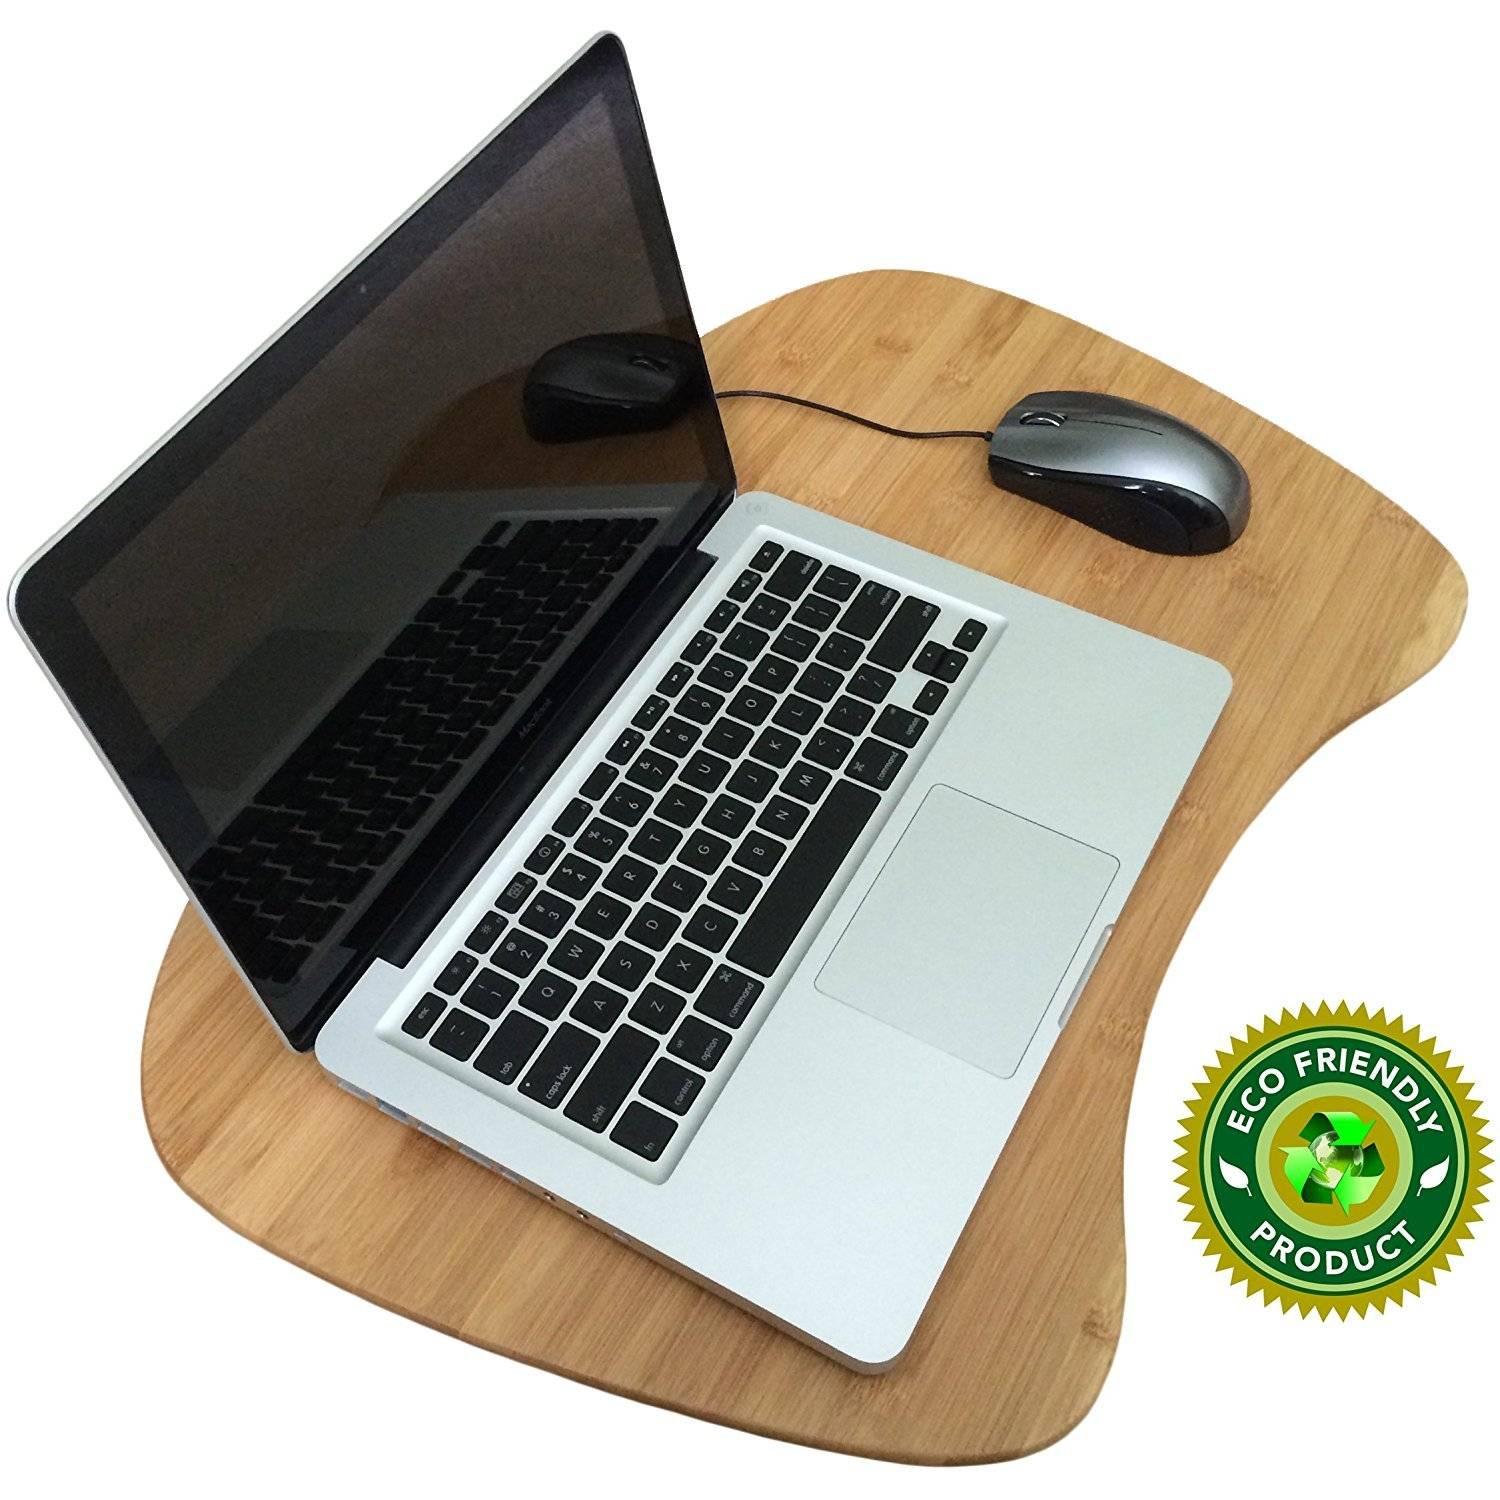 Upgraded Large Bamboo Lap Desk for Laptop, Portable Jumbo Laptop Desk Tray with Detachable Cushion Pilliow, Suitable as LapDesk Stand, Bed Tray, Book Stand, Writing Table - Pezin & Hulin